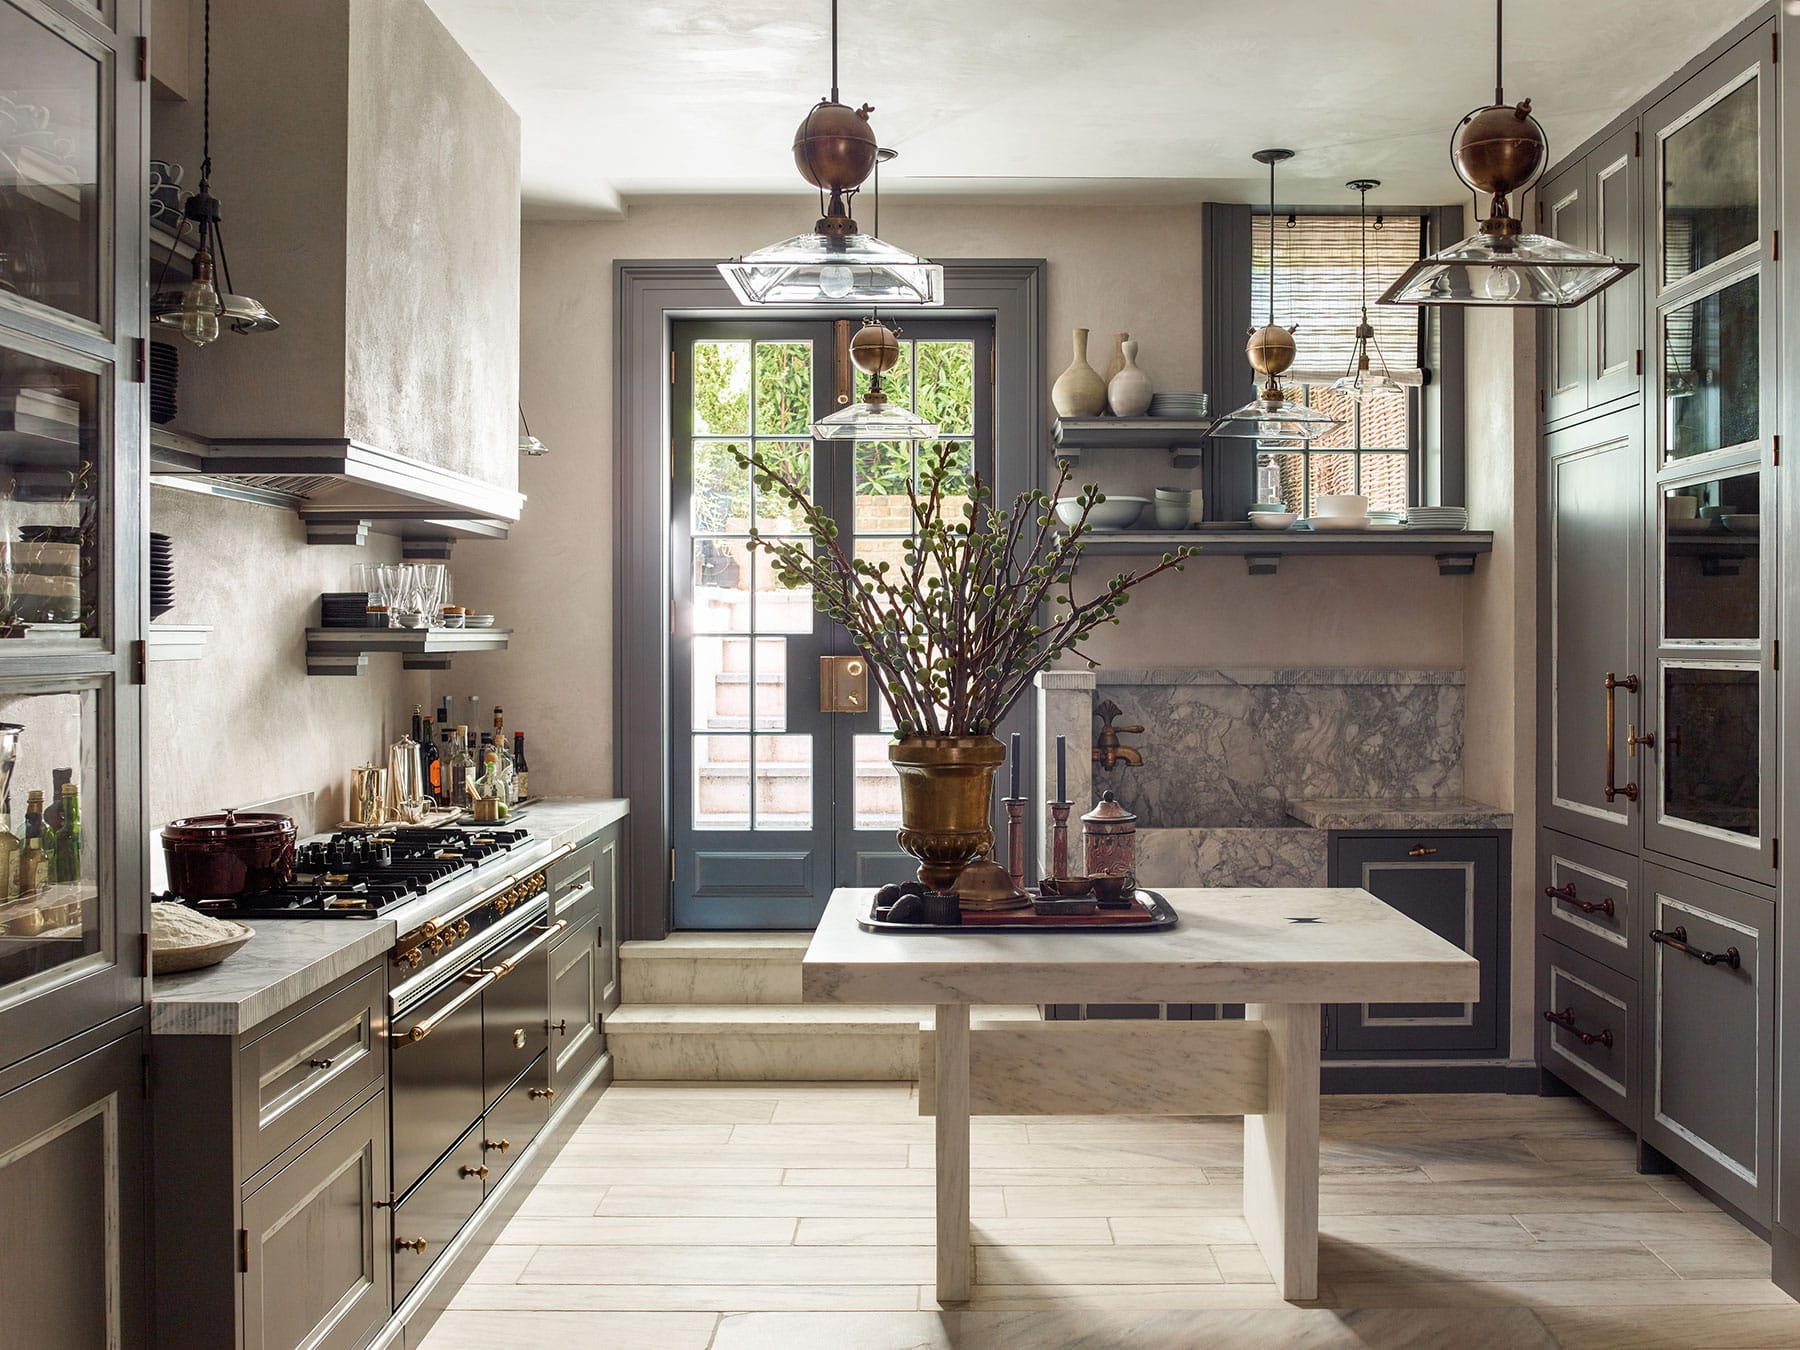 kitchen by Steven Gambrel